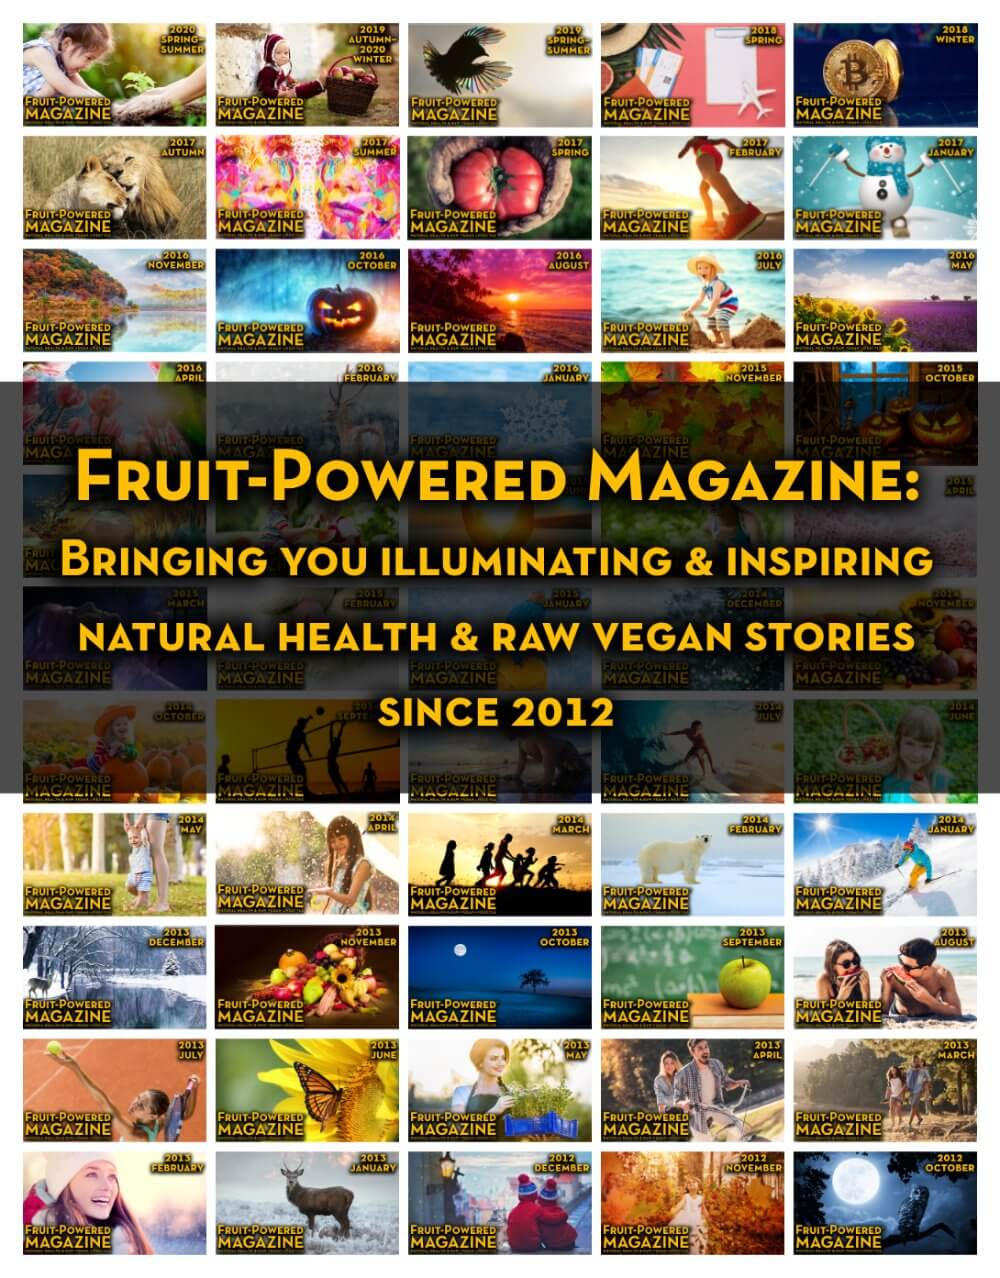 Fruit-Powered Magazine archive - complete issue covers - Fruit-Powered